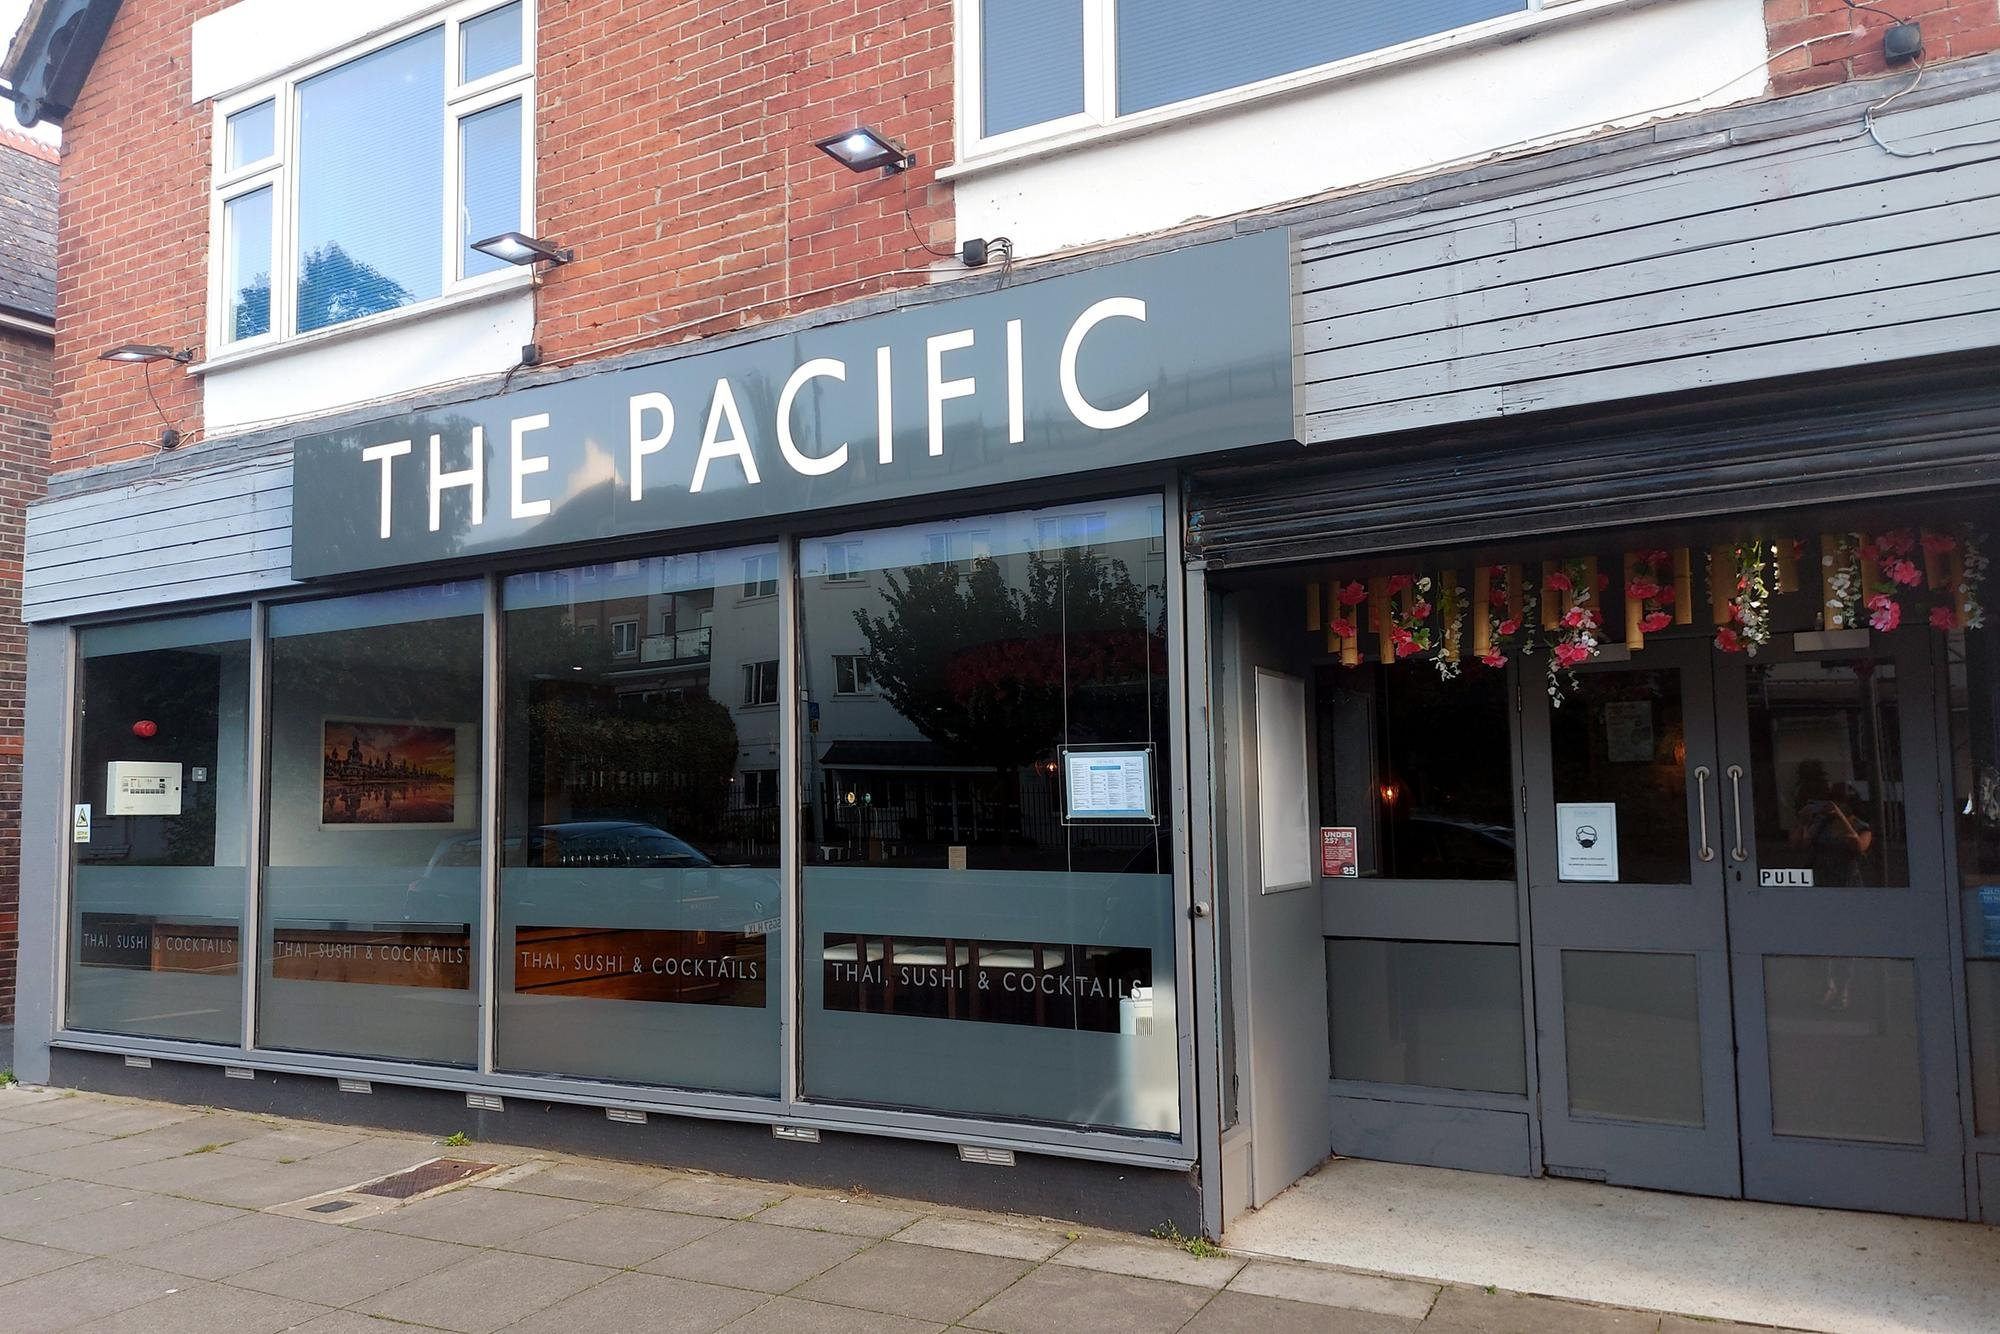 The Pacific, Drayton, Portsmouth